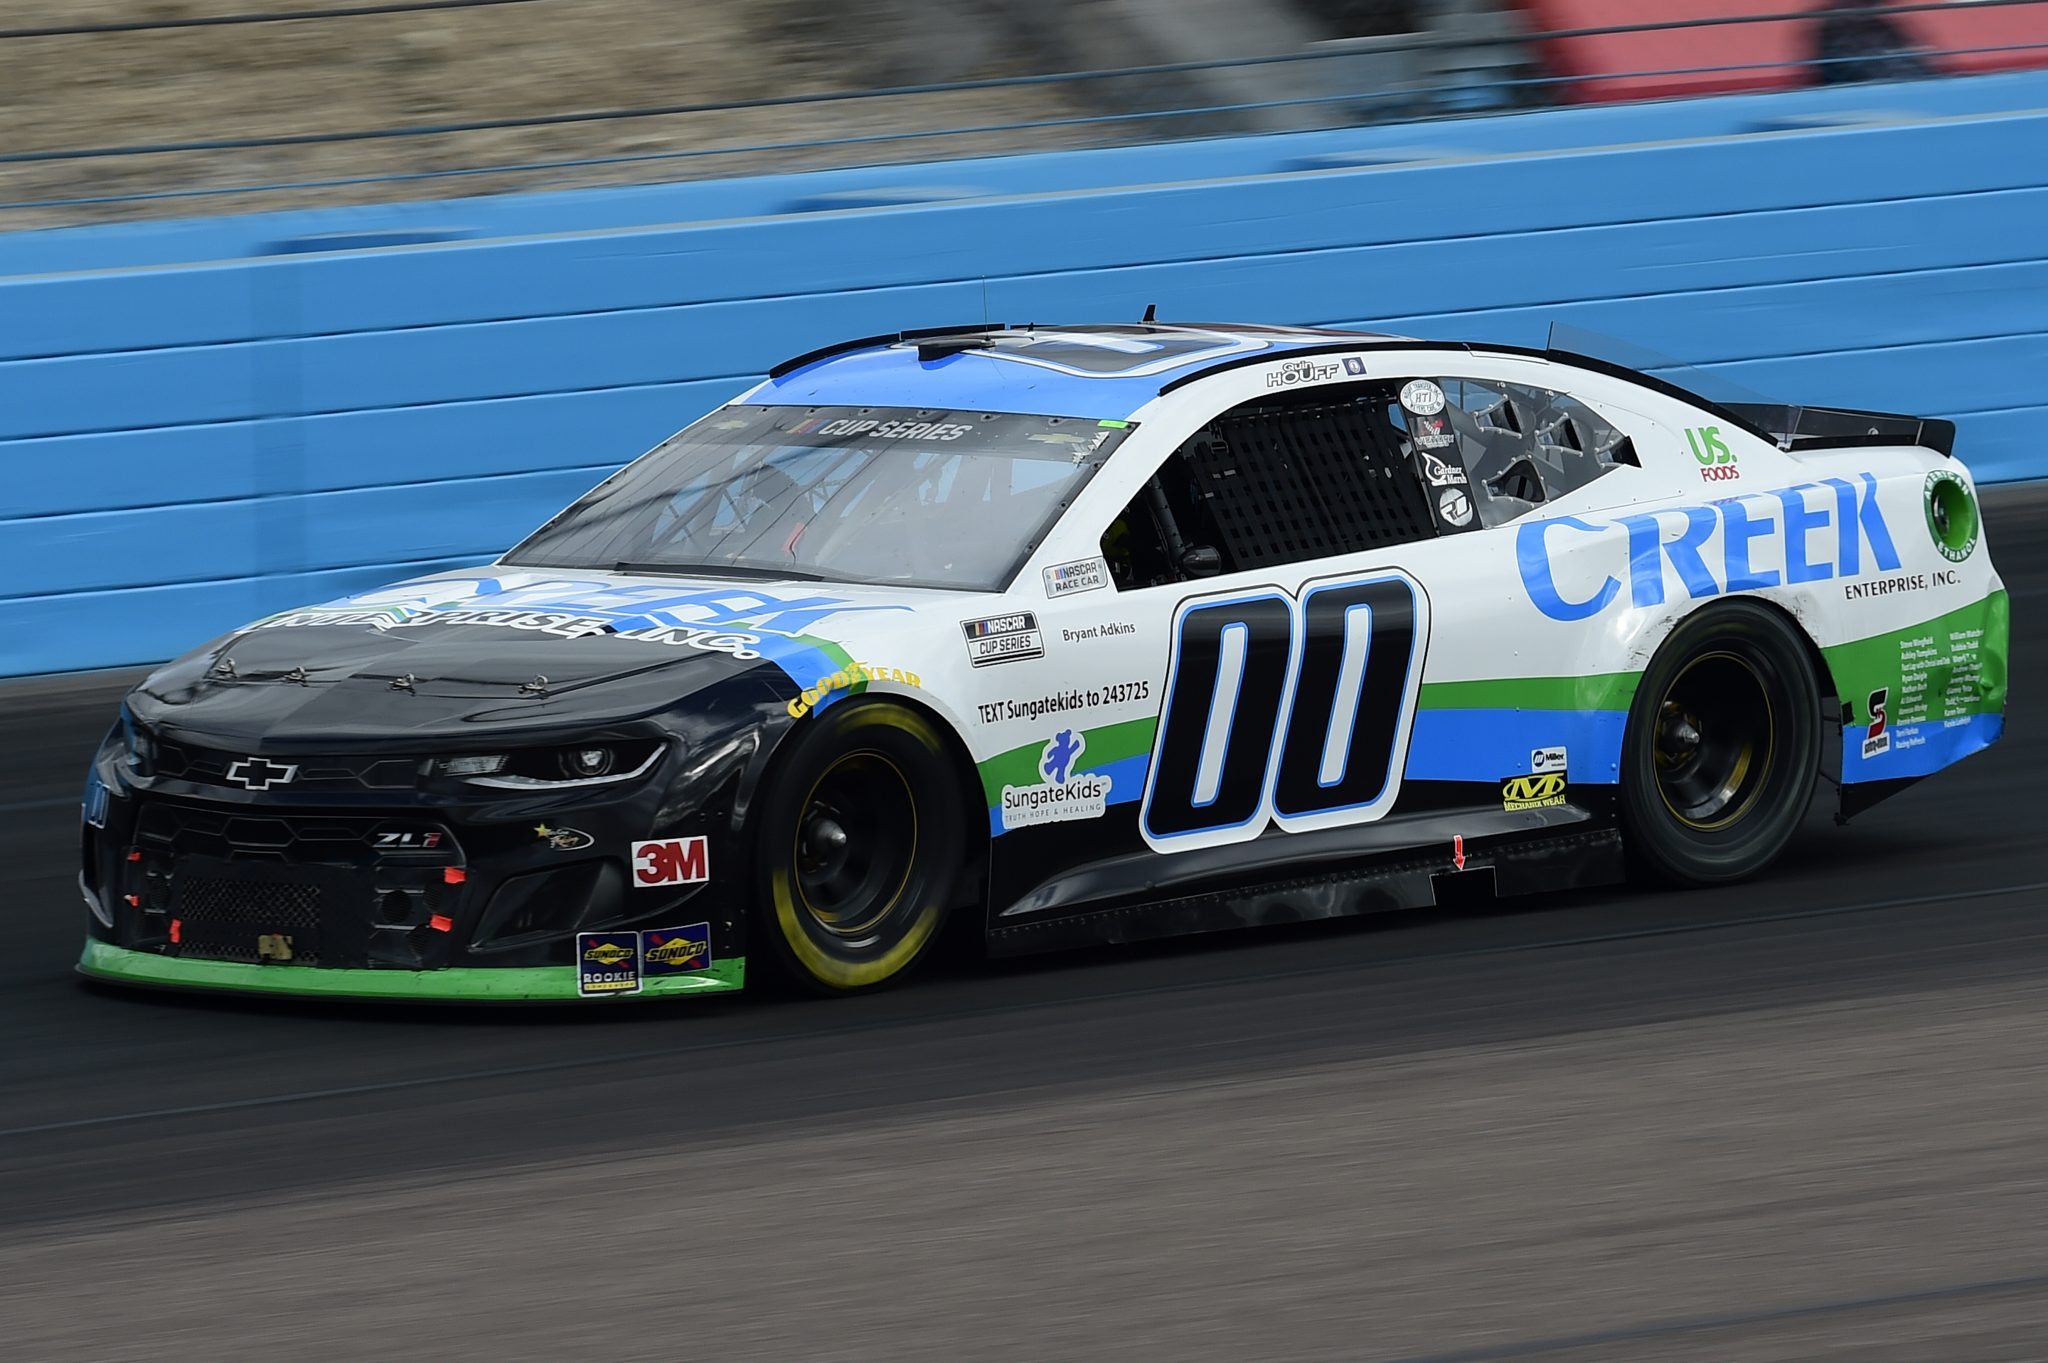 AVONDALE, ARIZONA - NOVEMBER 08: Quin Houff, driver of the #00 CREEK Enterprises Inc. Chevrolet, drives during the NASCAR Cup Series Season Finale 500 at Phoenix Raceway on November 08, 2020 in Avondale, Arizona. (Photo by Jared C. Tilton/Getty Images) | Getty Images